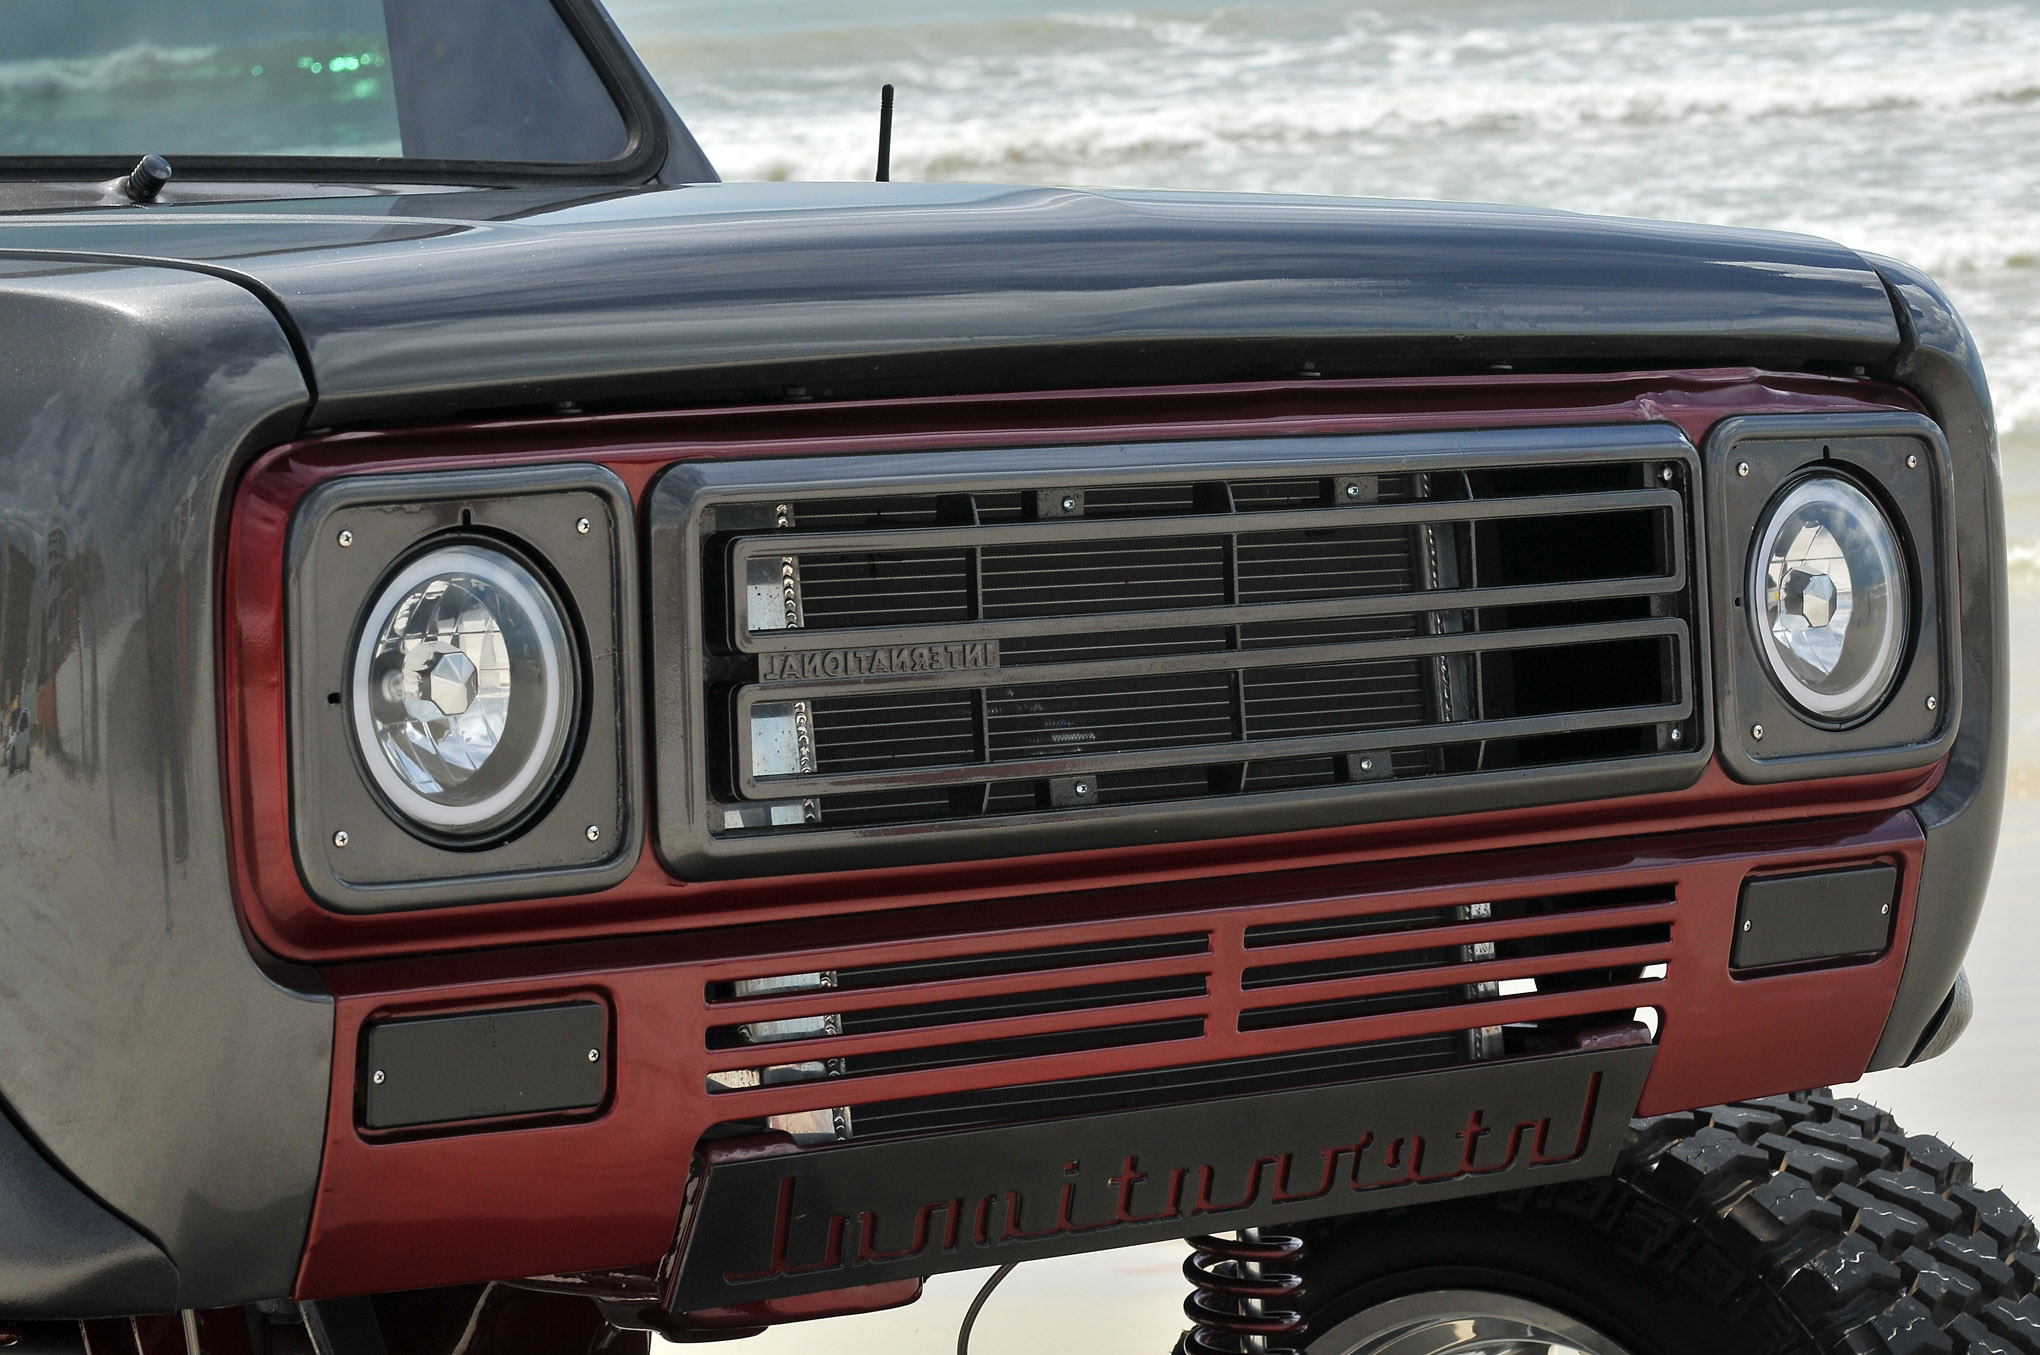 Enthusiasts: 1979 International Scout II- Scout's Honor